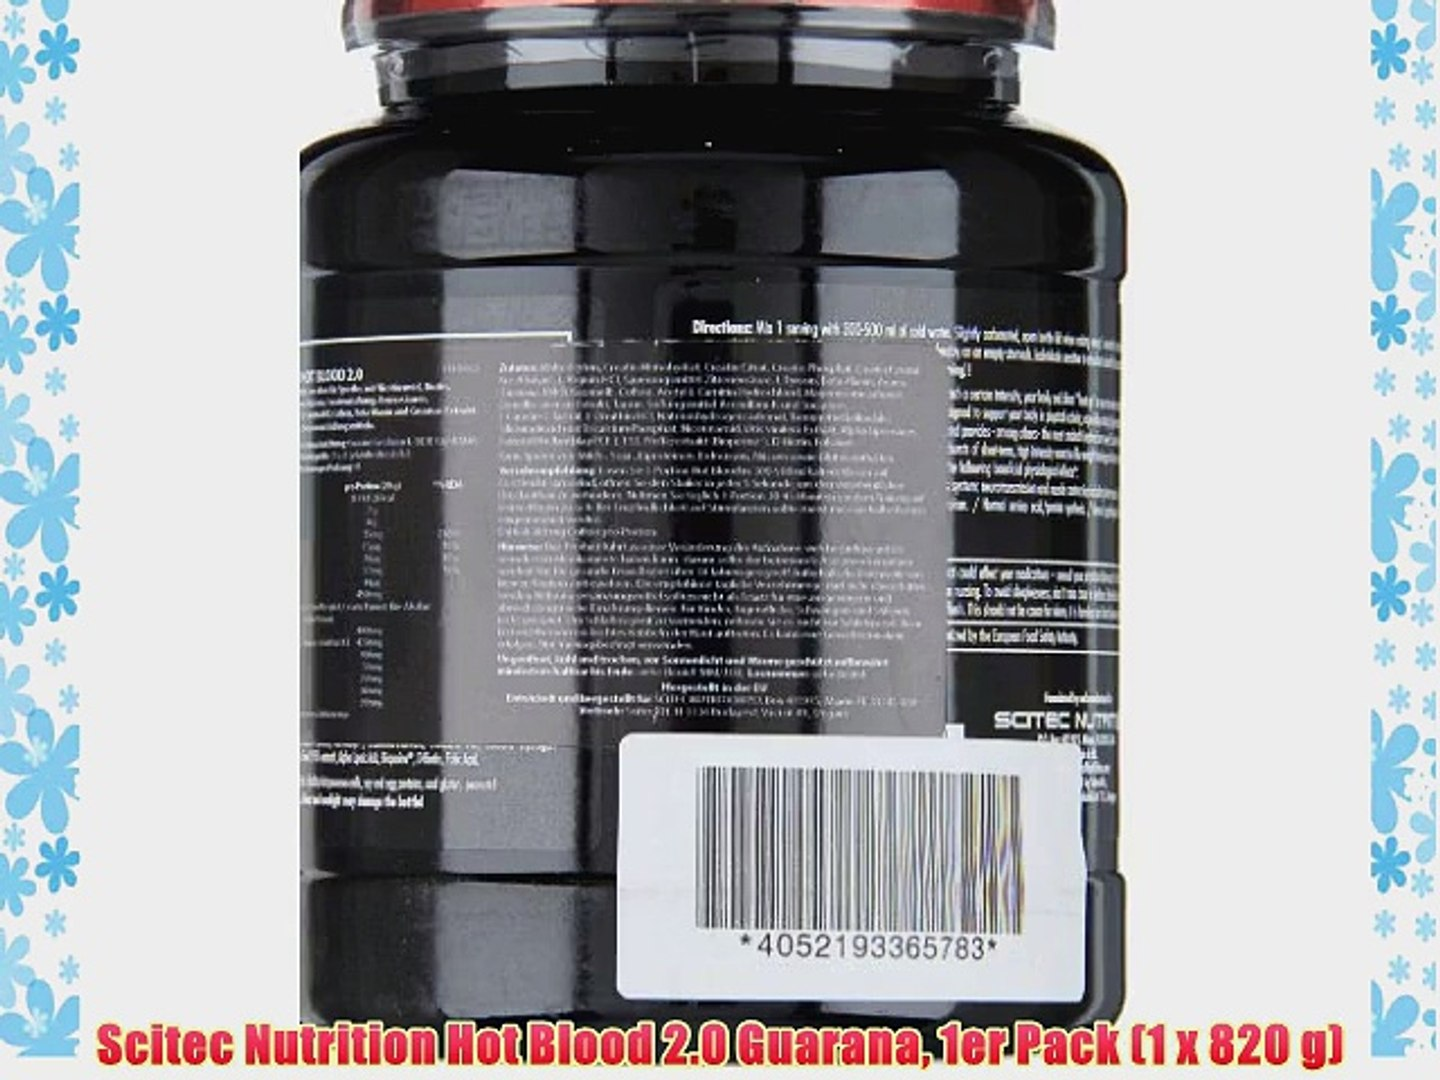 Scitec Nutrition Hot Blood 2.0 Guarana 1er Pack (1 x 820 g)